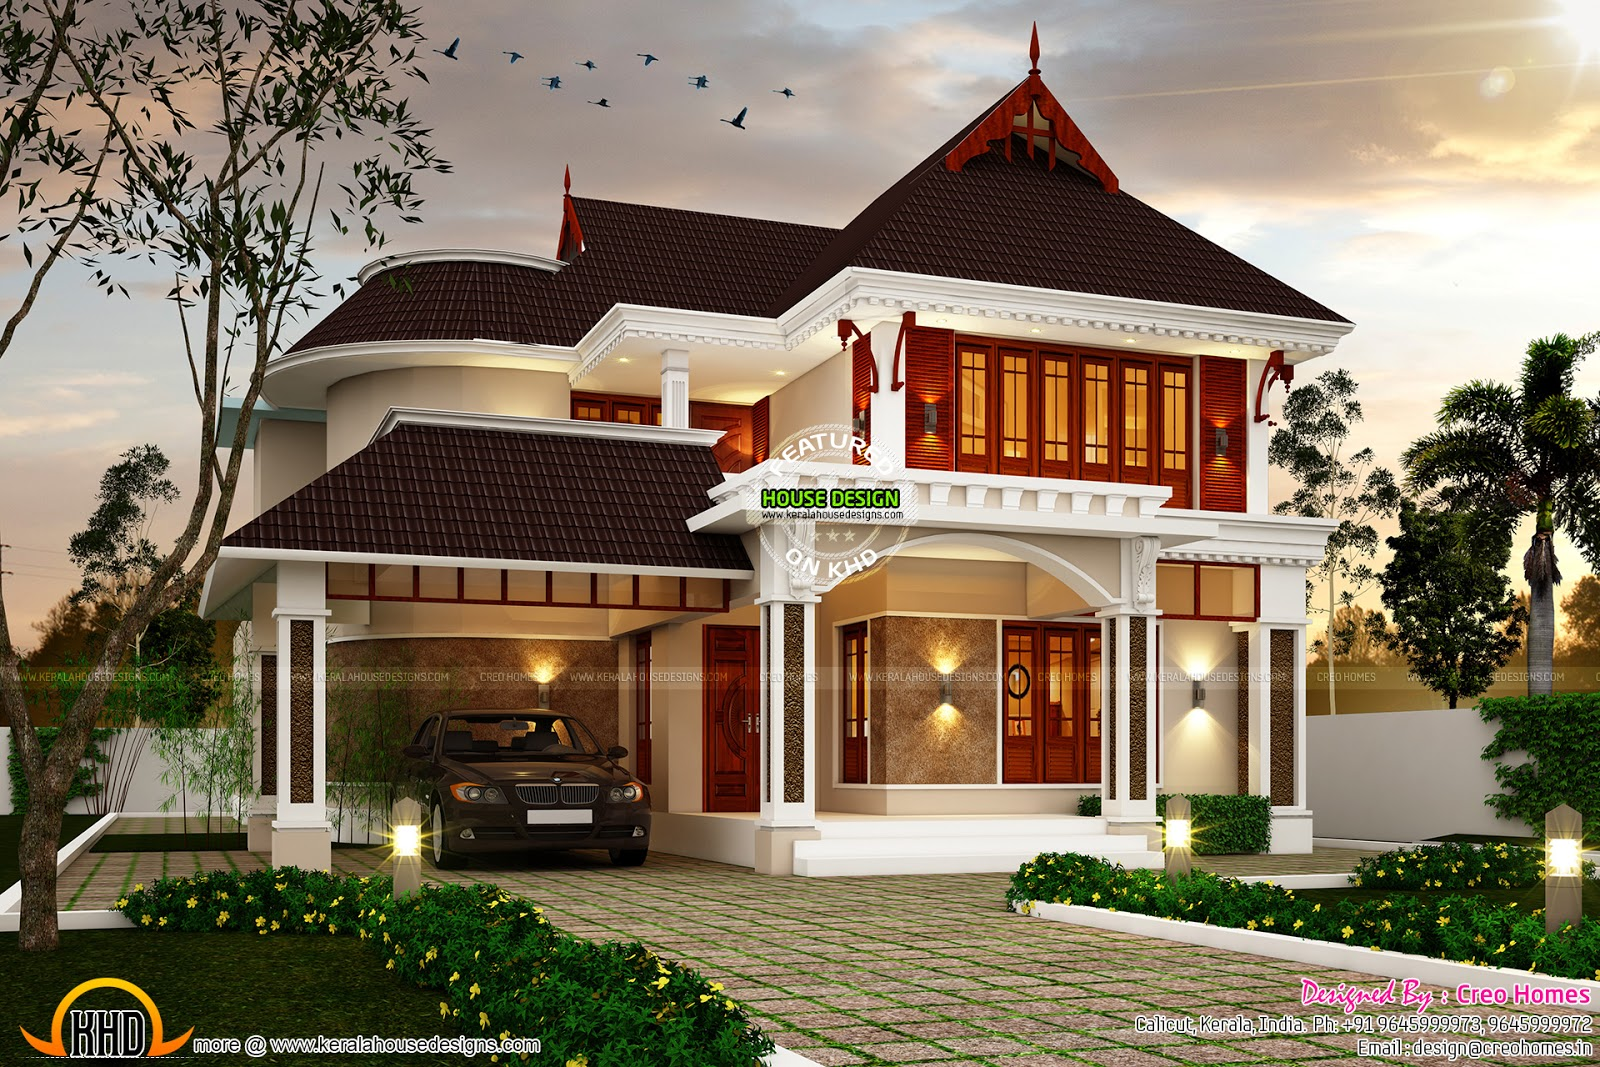 Superb dream house plan kerala home design and floor plans for Design dream home online